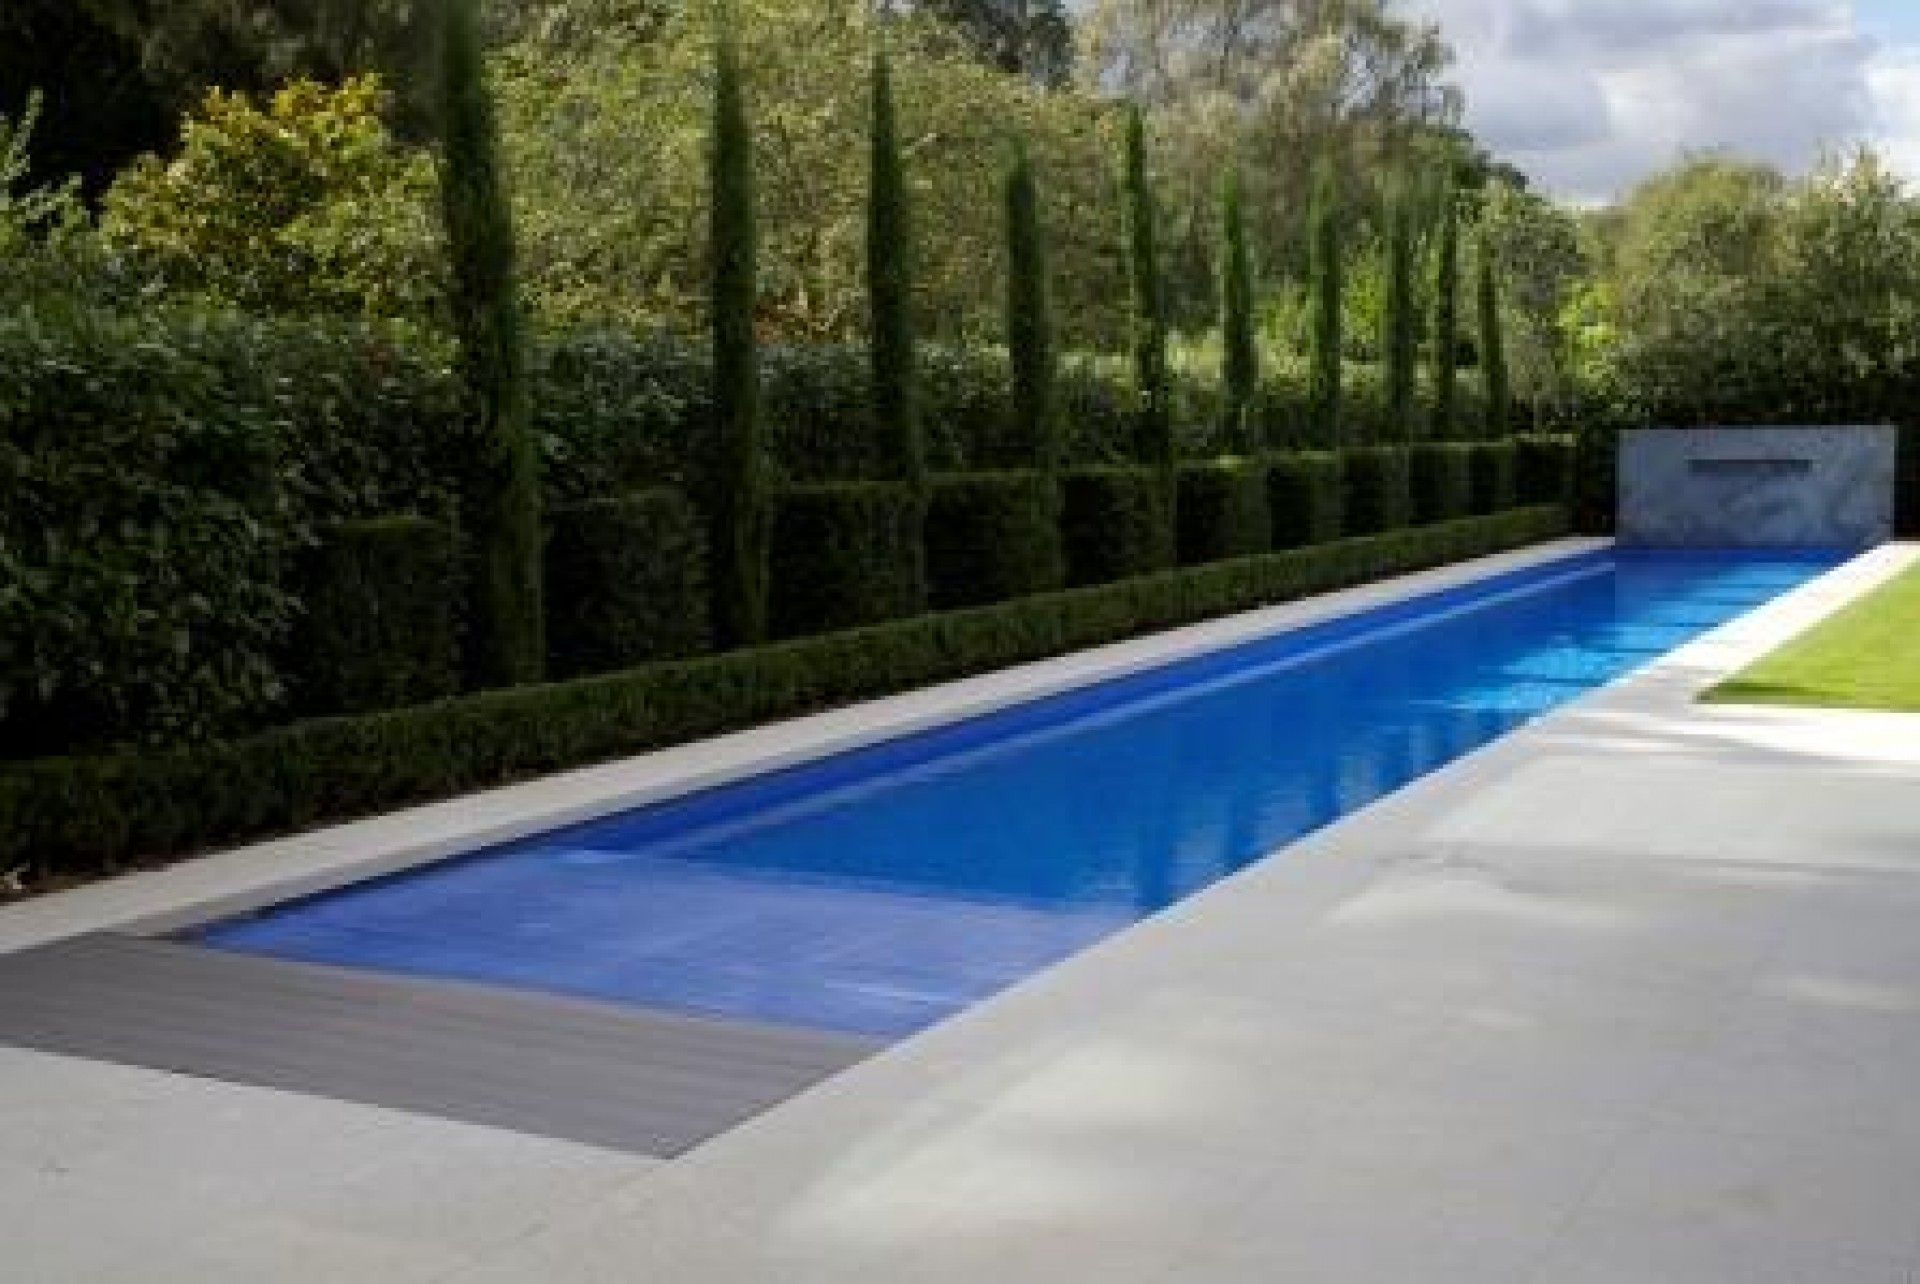 Pool Design, Clean Lap Pool Design Ideas With Trimmed Bush Beside And  Marble Paving: Lap Pools   Personal Pools Just For You